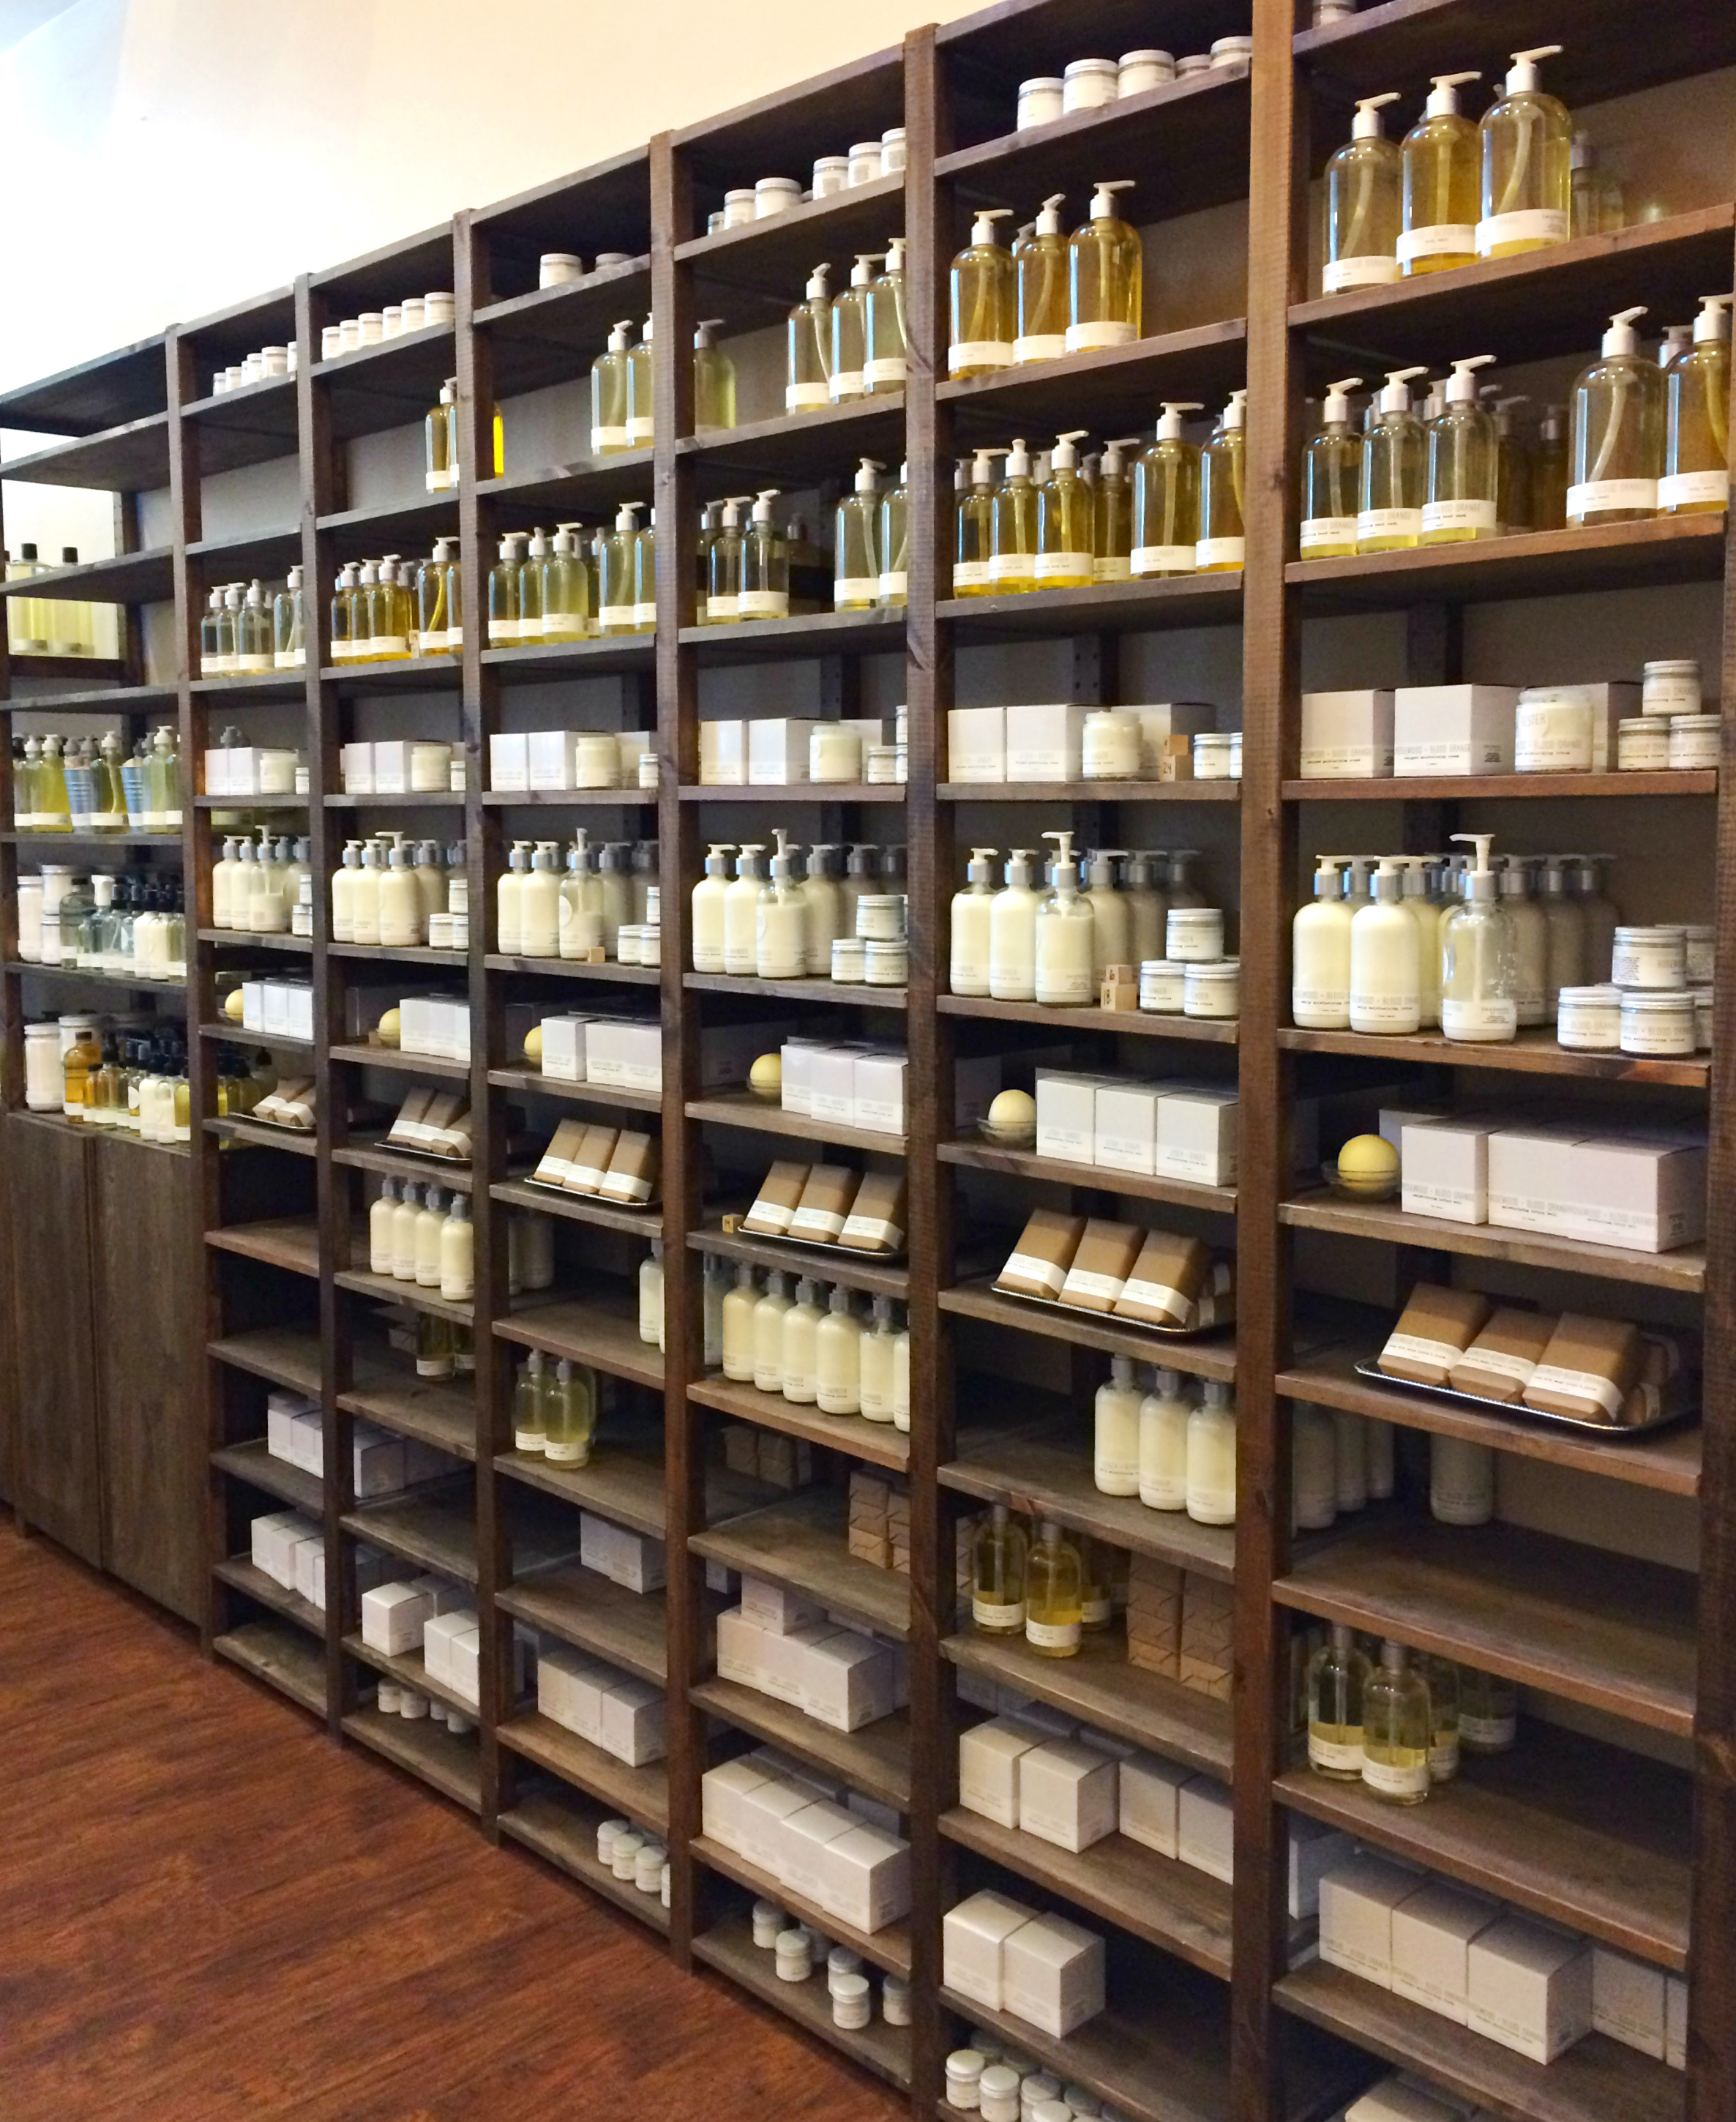 handmade. la conner shelves filled with goodness!